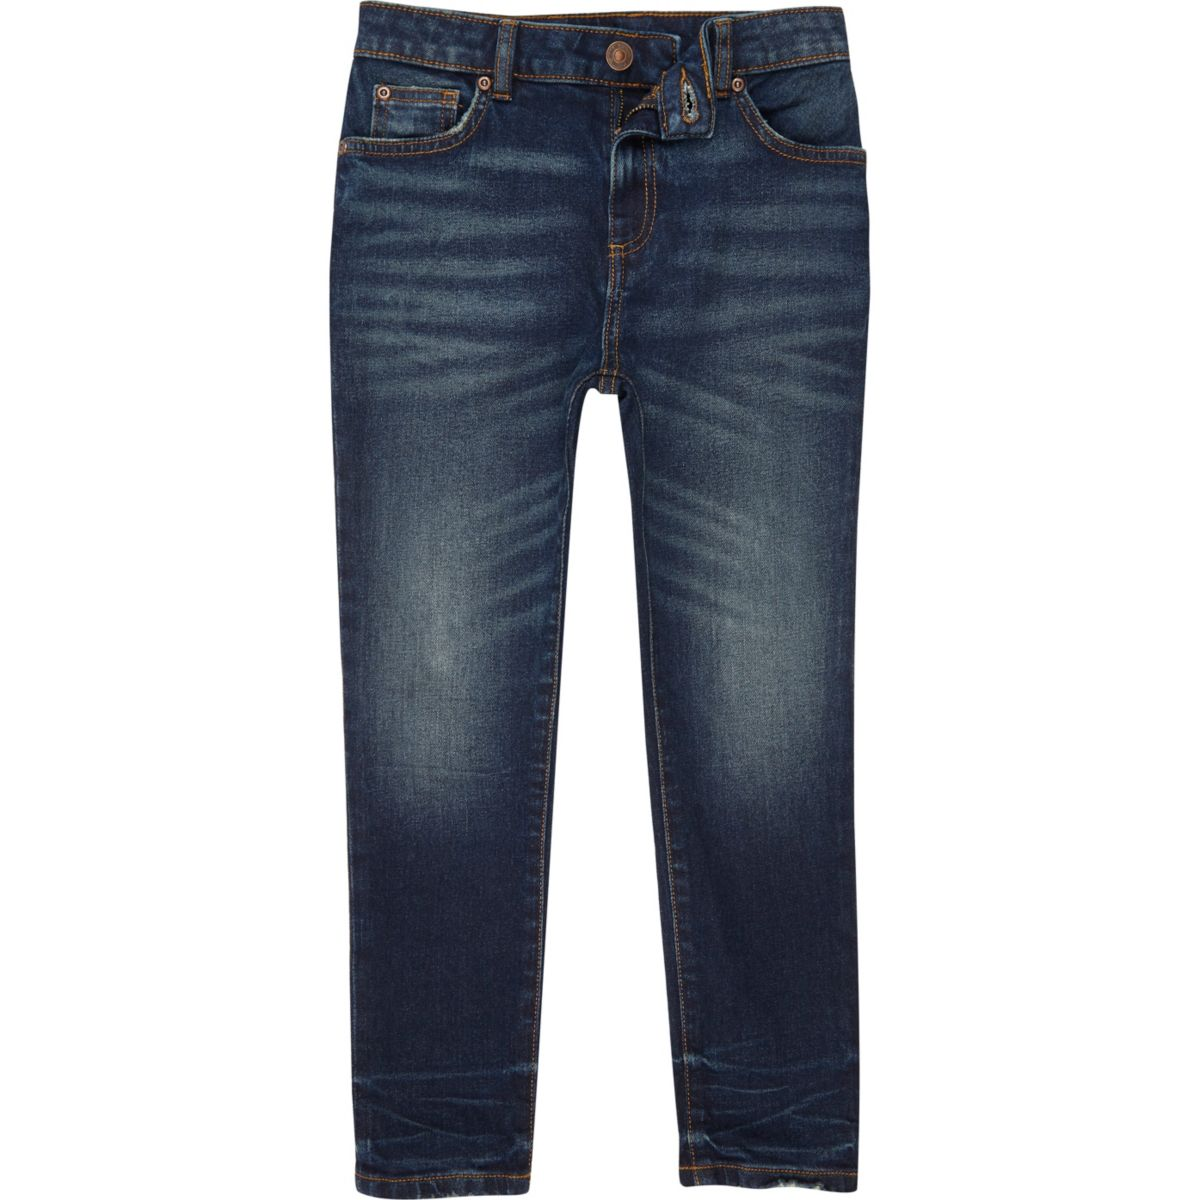 SALE! RSQ London Boys Skinny Stretch Jeans $ 2 FOR $ RSQ Tokyo Ripped Super Skinny Stretch Boys Jeans $ Tillys offers a lot of different styles of jeans and pants for boys including skinny, ripped jeans and slim jeans, along with twill, chino, and khaki pants.